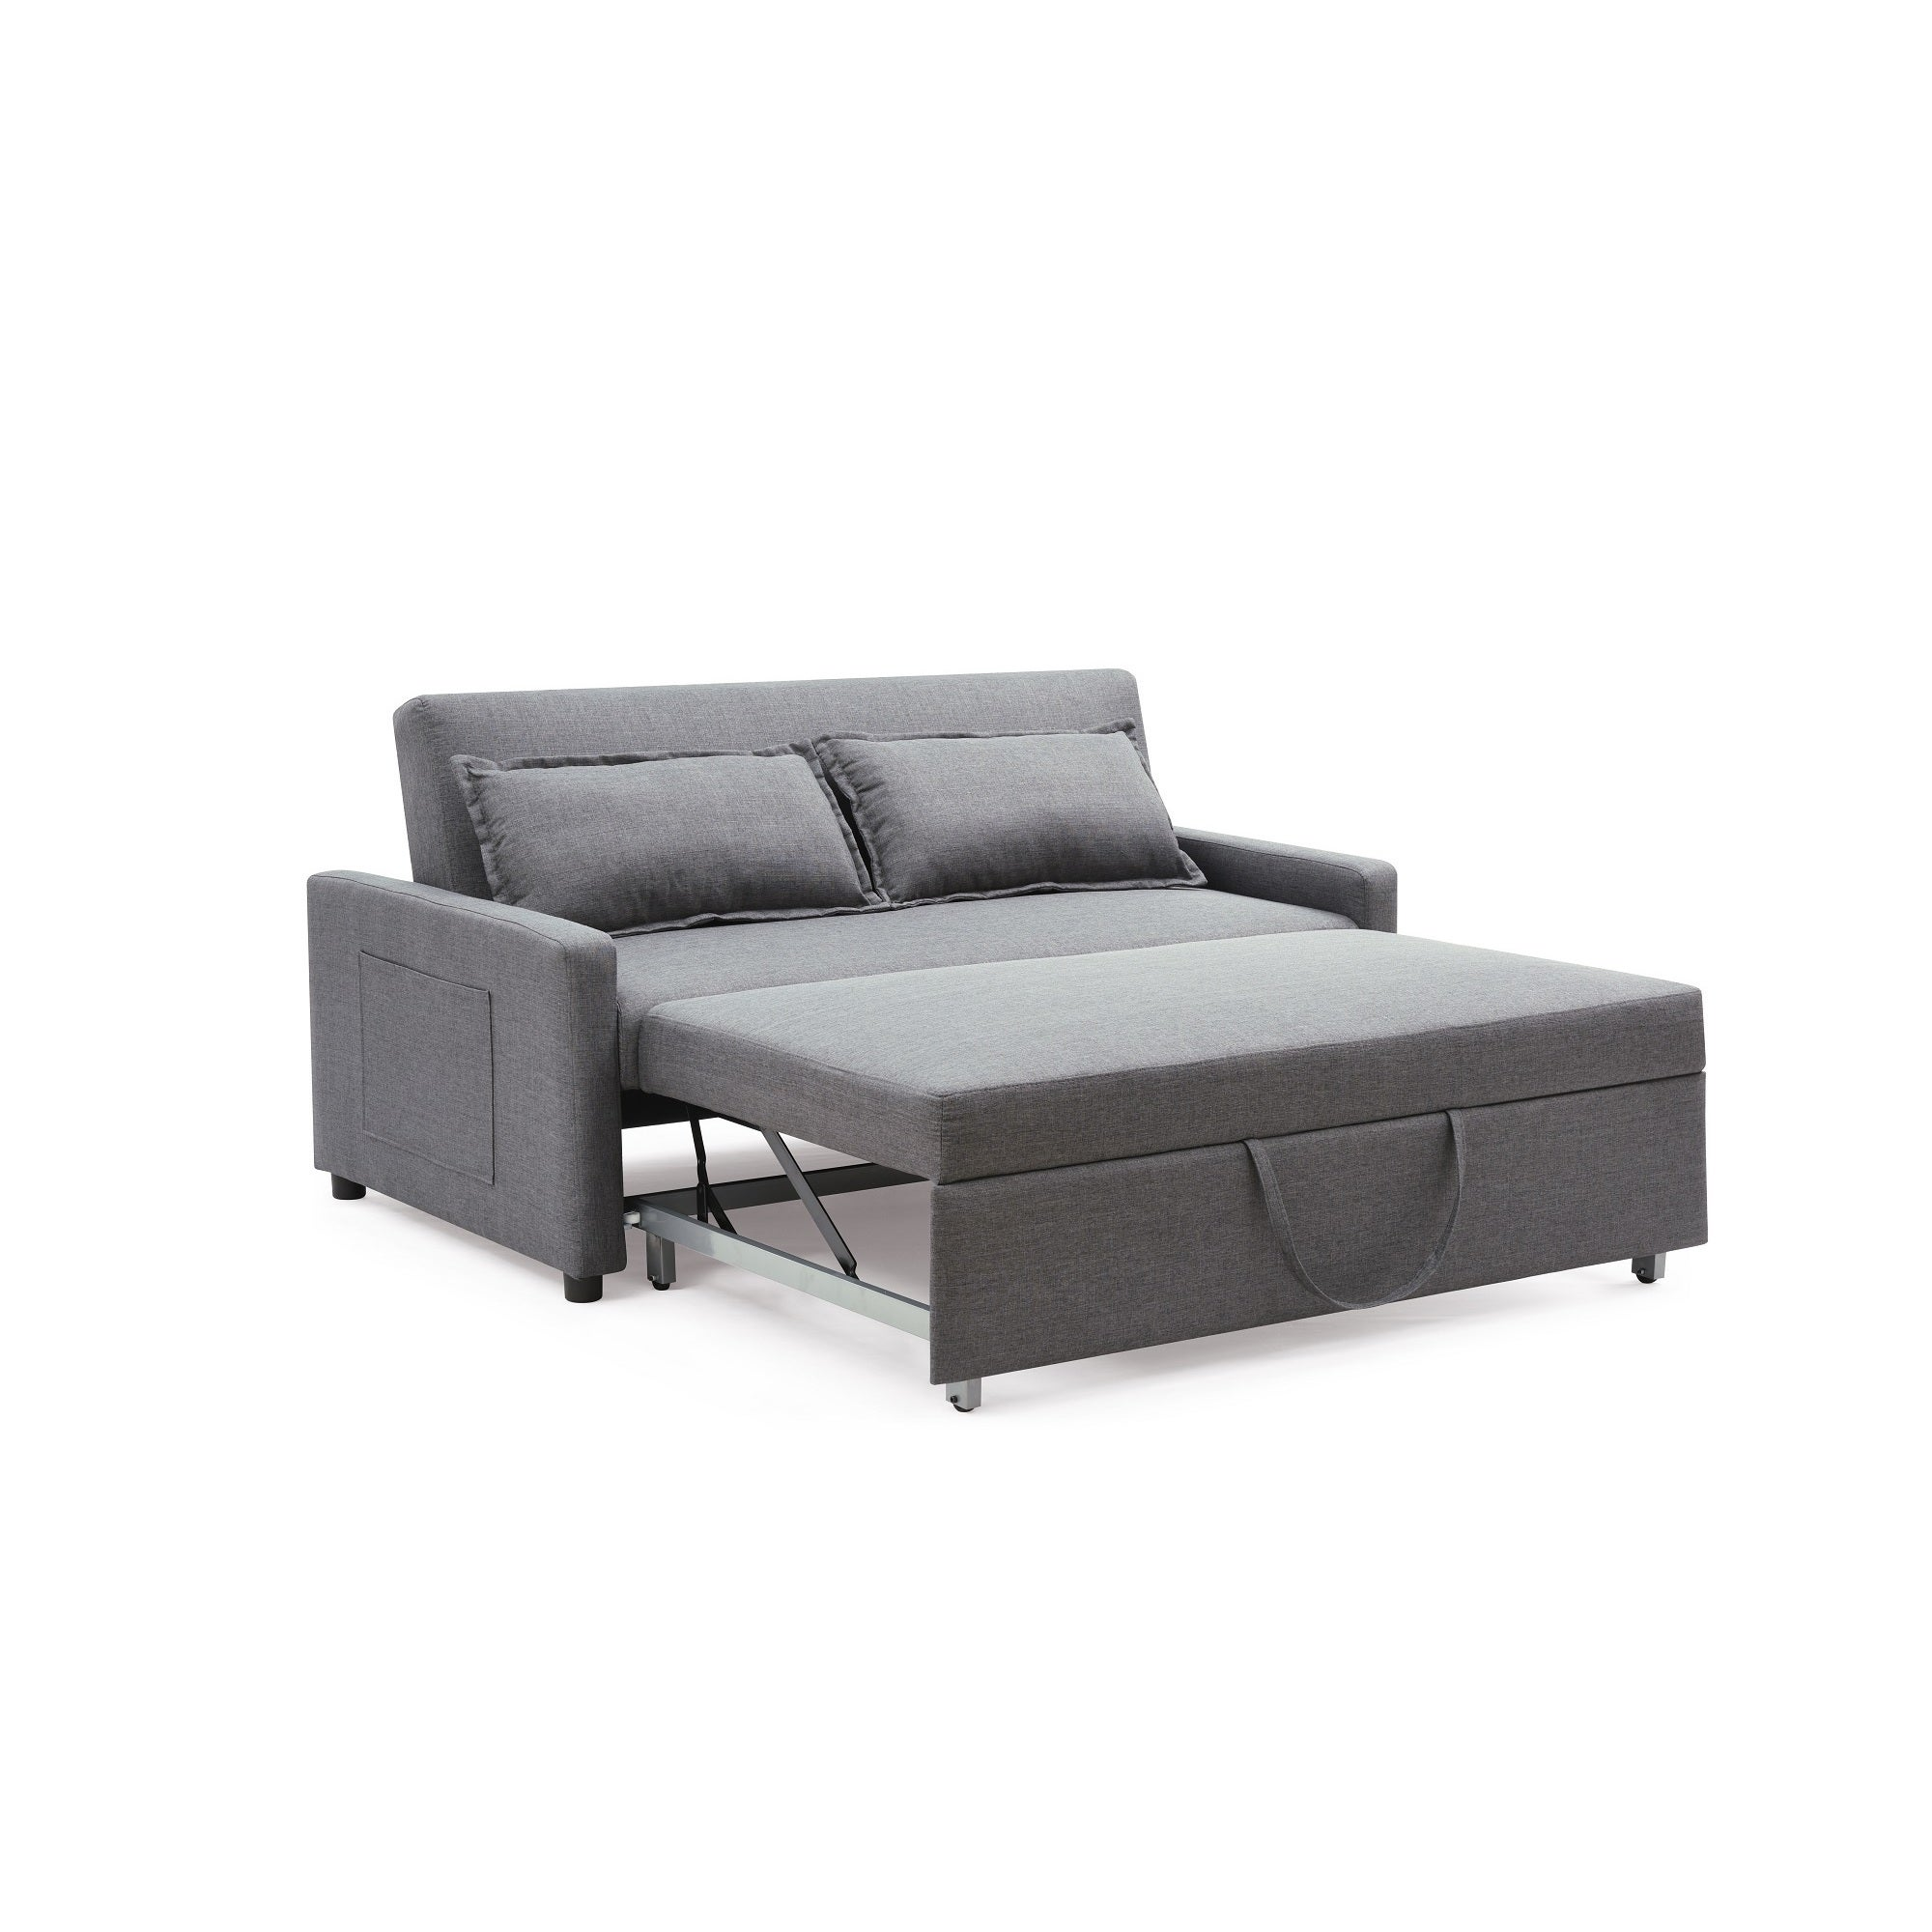 Porch Den Prado Convertible Sofa